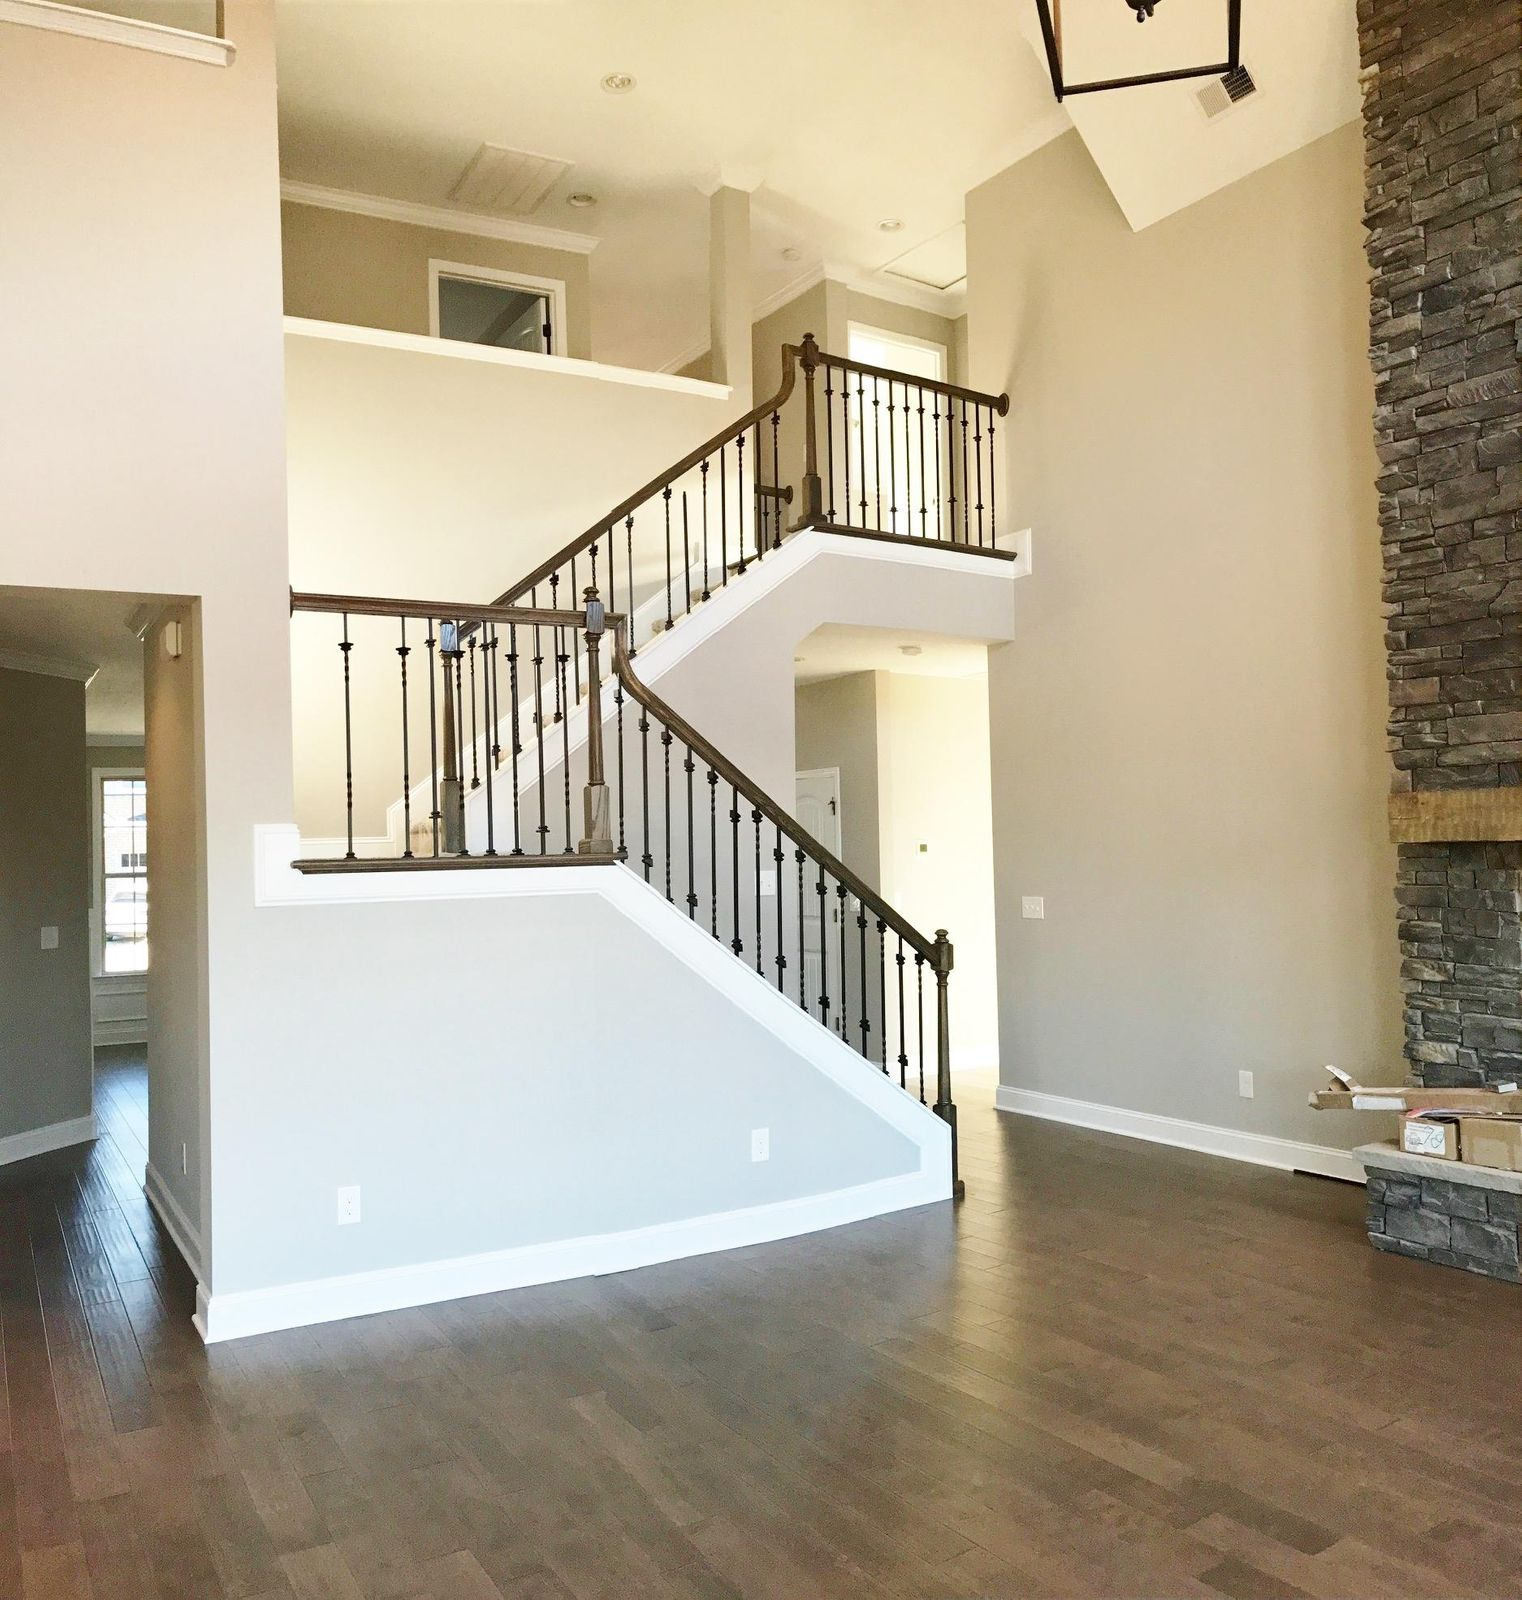 Open railing on stairs to second floor